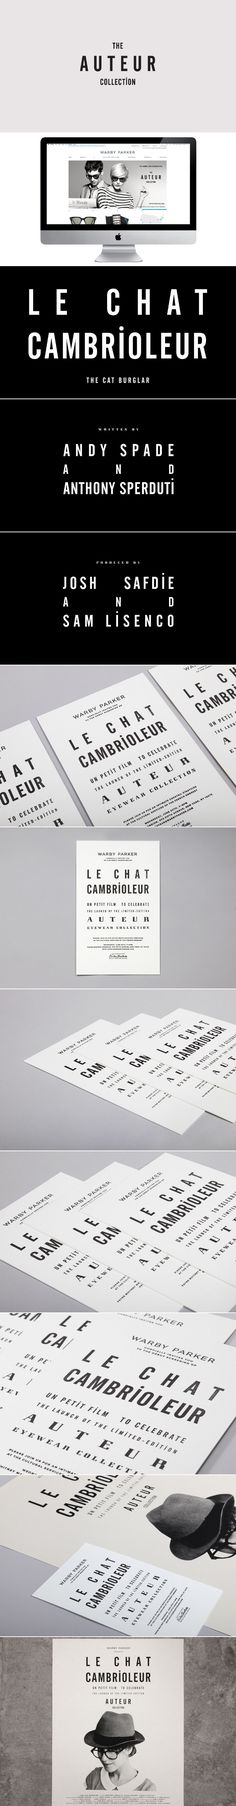 Le Chat Cambrioleur – The graphic sensibility of French New Wave films inspired the design and typography of a several printed pieces and film credits that would announce Warby Parker's Auteur Collection, debuting at the French Embassy of New York in the summer of 2012.    CREDITS  Role – Art Direction & Design Creative Direction – Partners & Spade Producer – Warby Parker Editing – Red Bucket Films